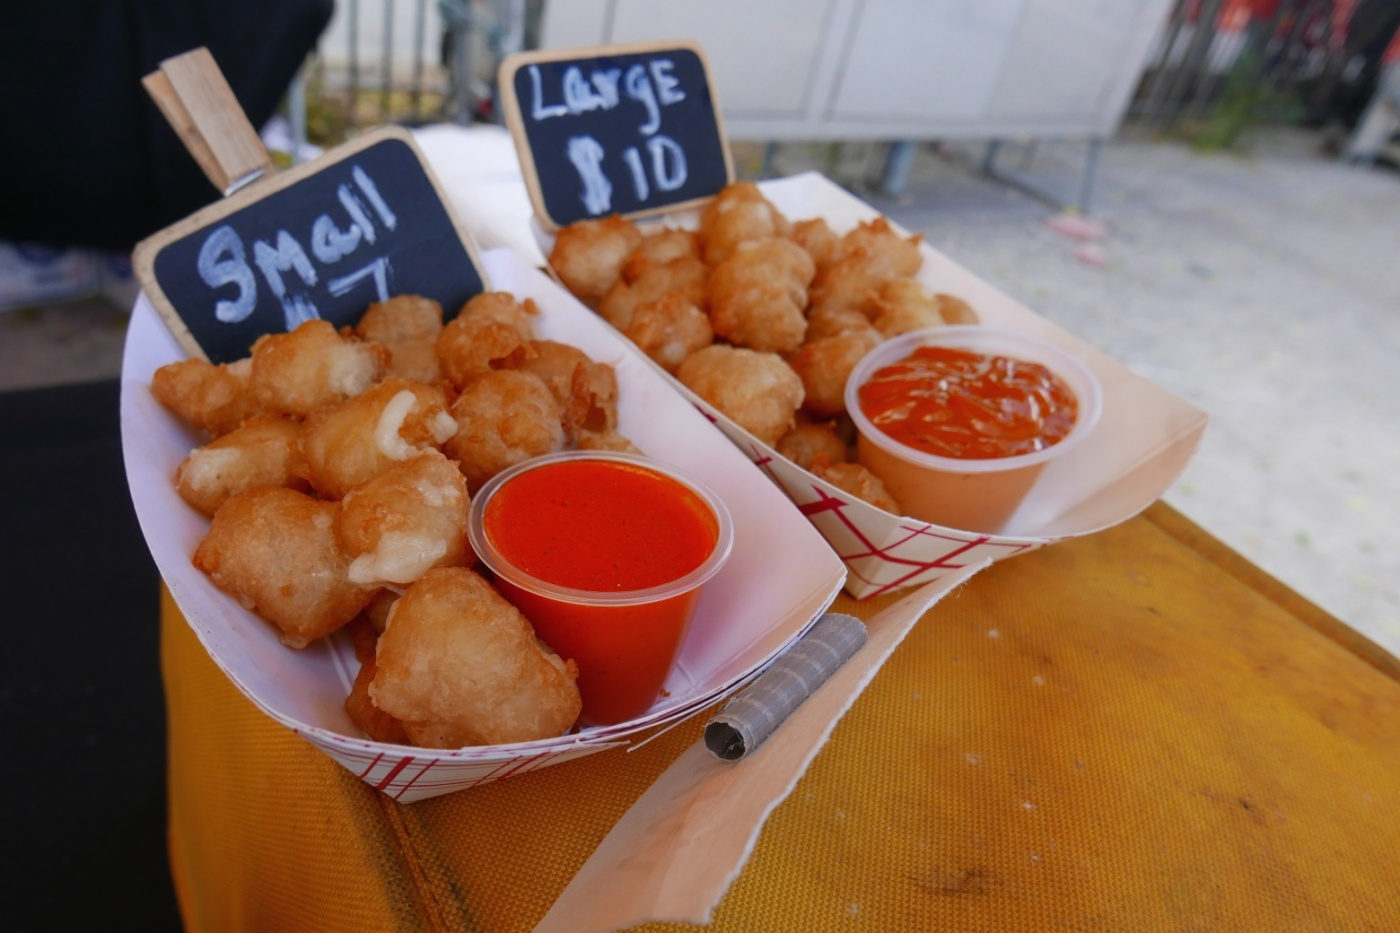 Curd's the Word. Artisanal Beer Battered Cheese Curds